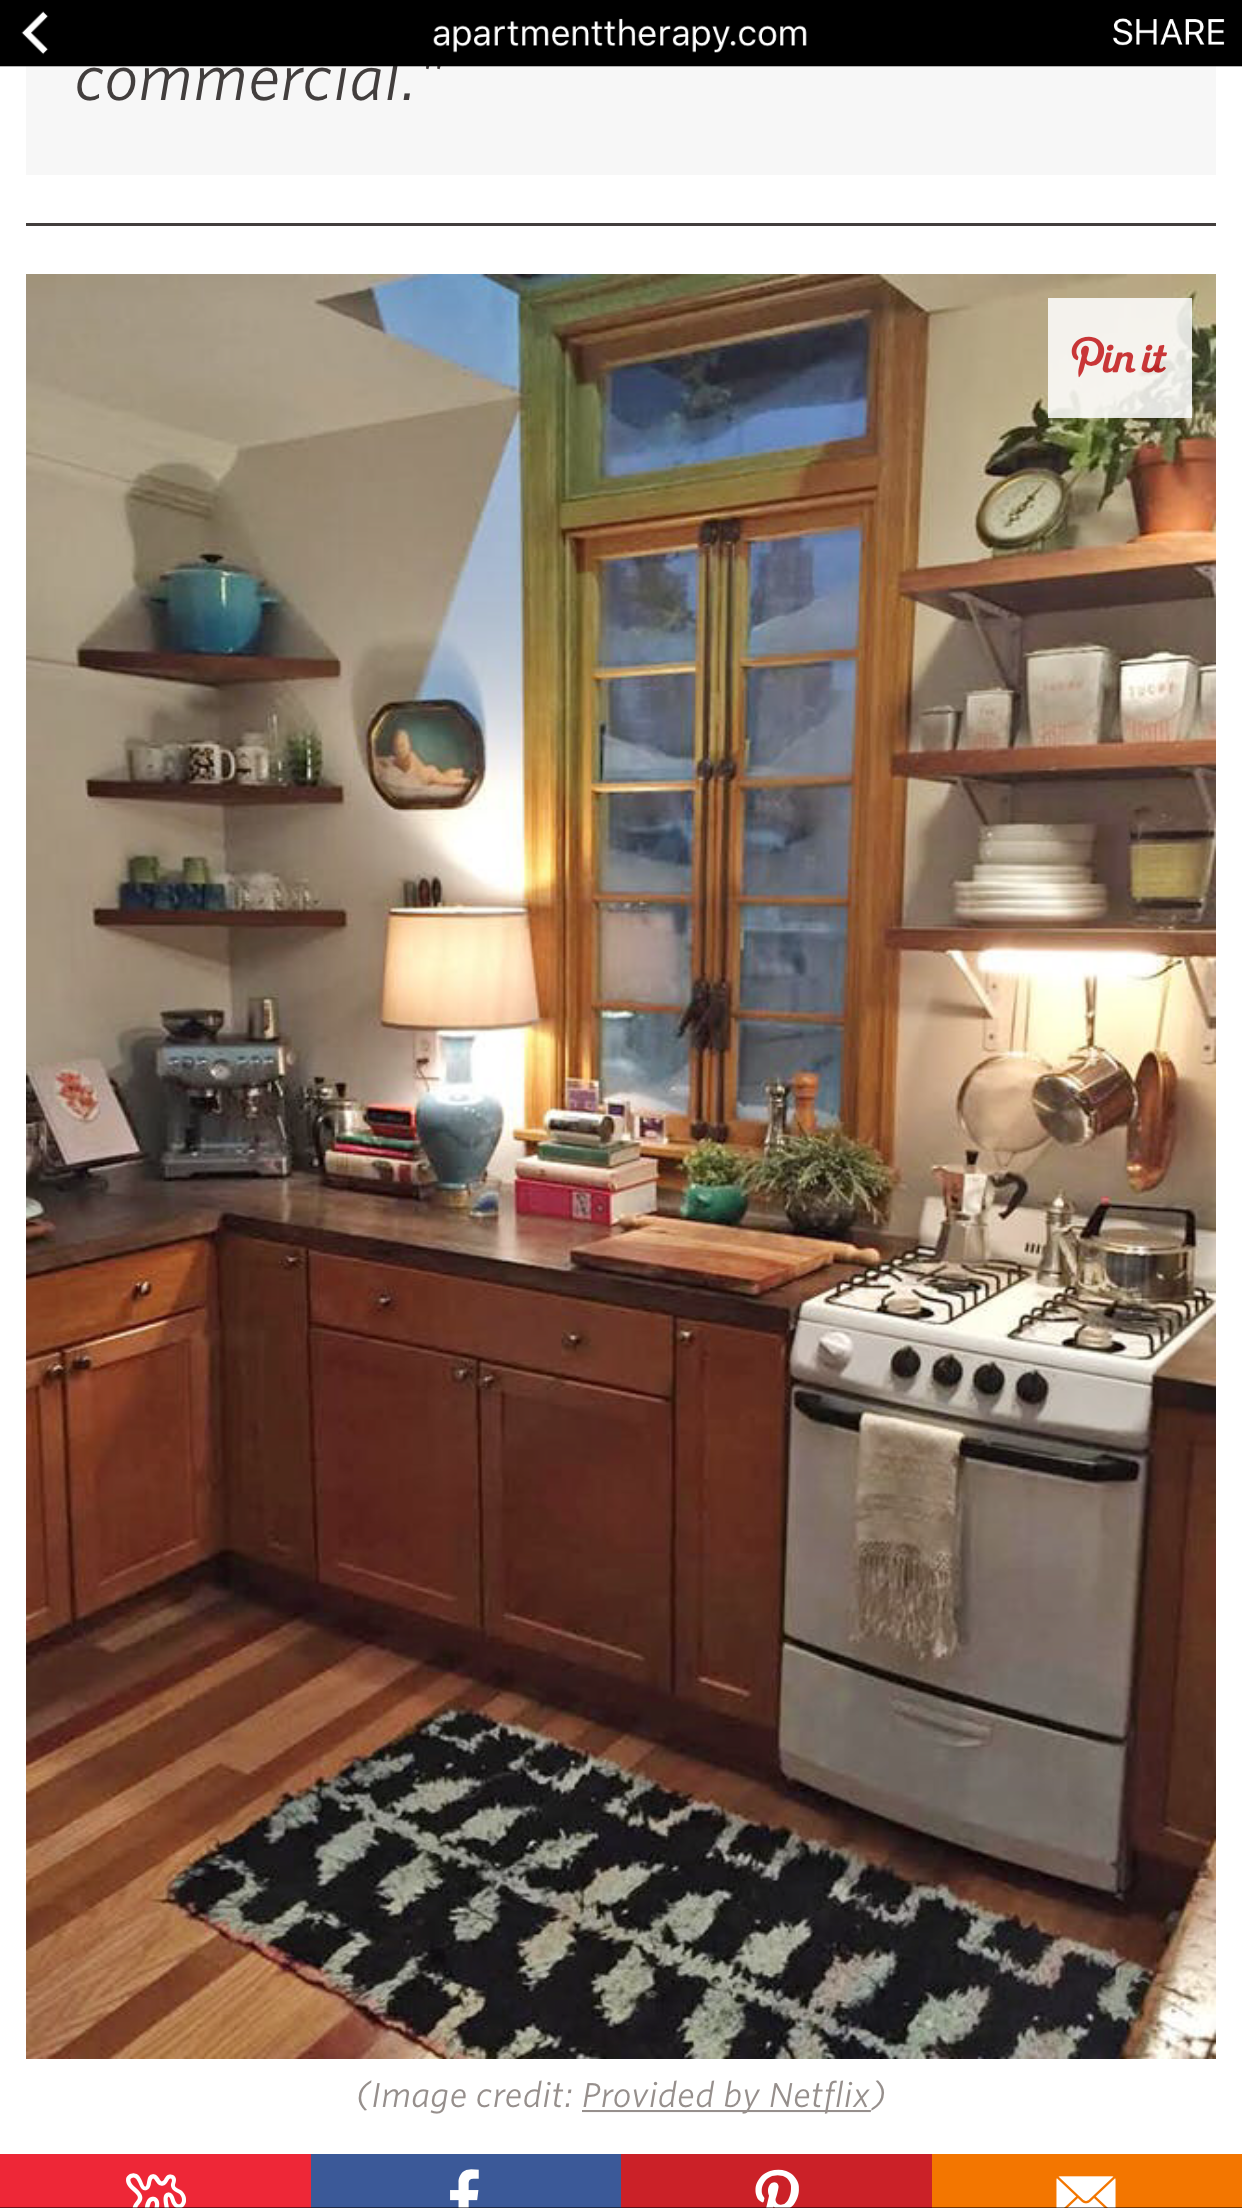 Lamp in the kitchen (Dev's apartment from Master of None